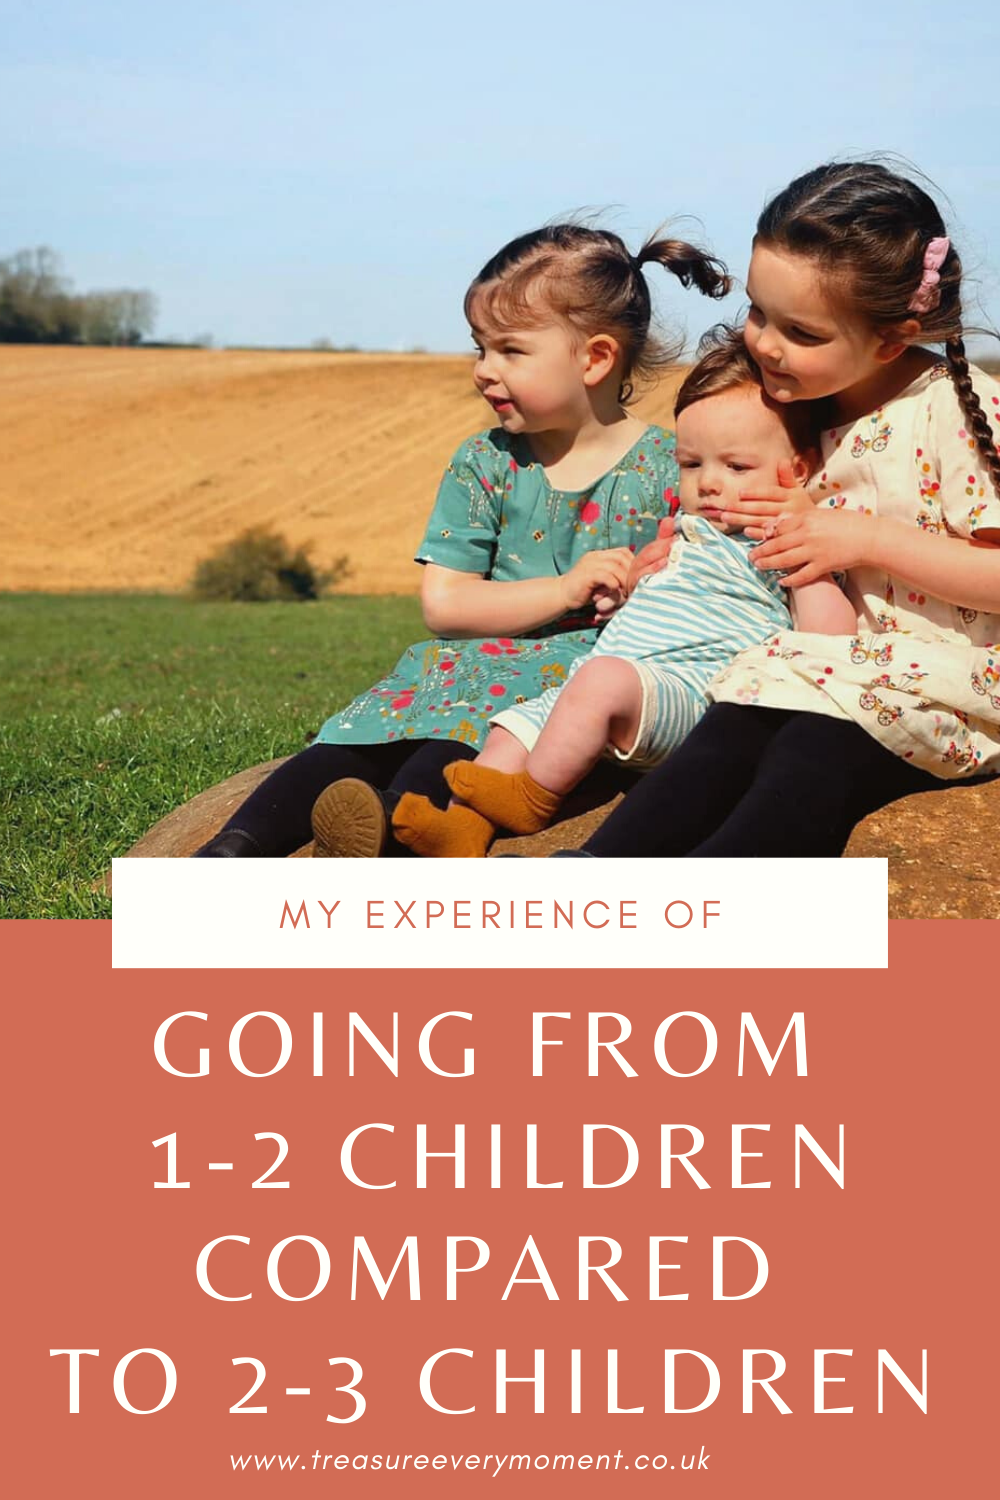 My Experience of going from 1-2 Children compared to 2-3 Children